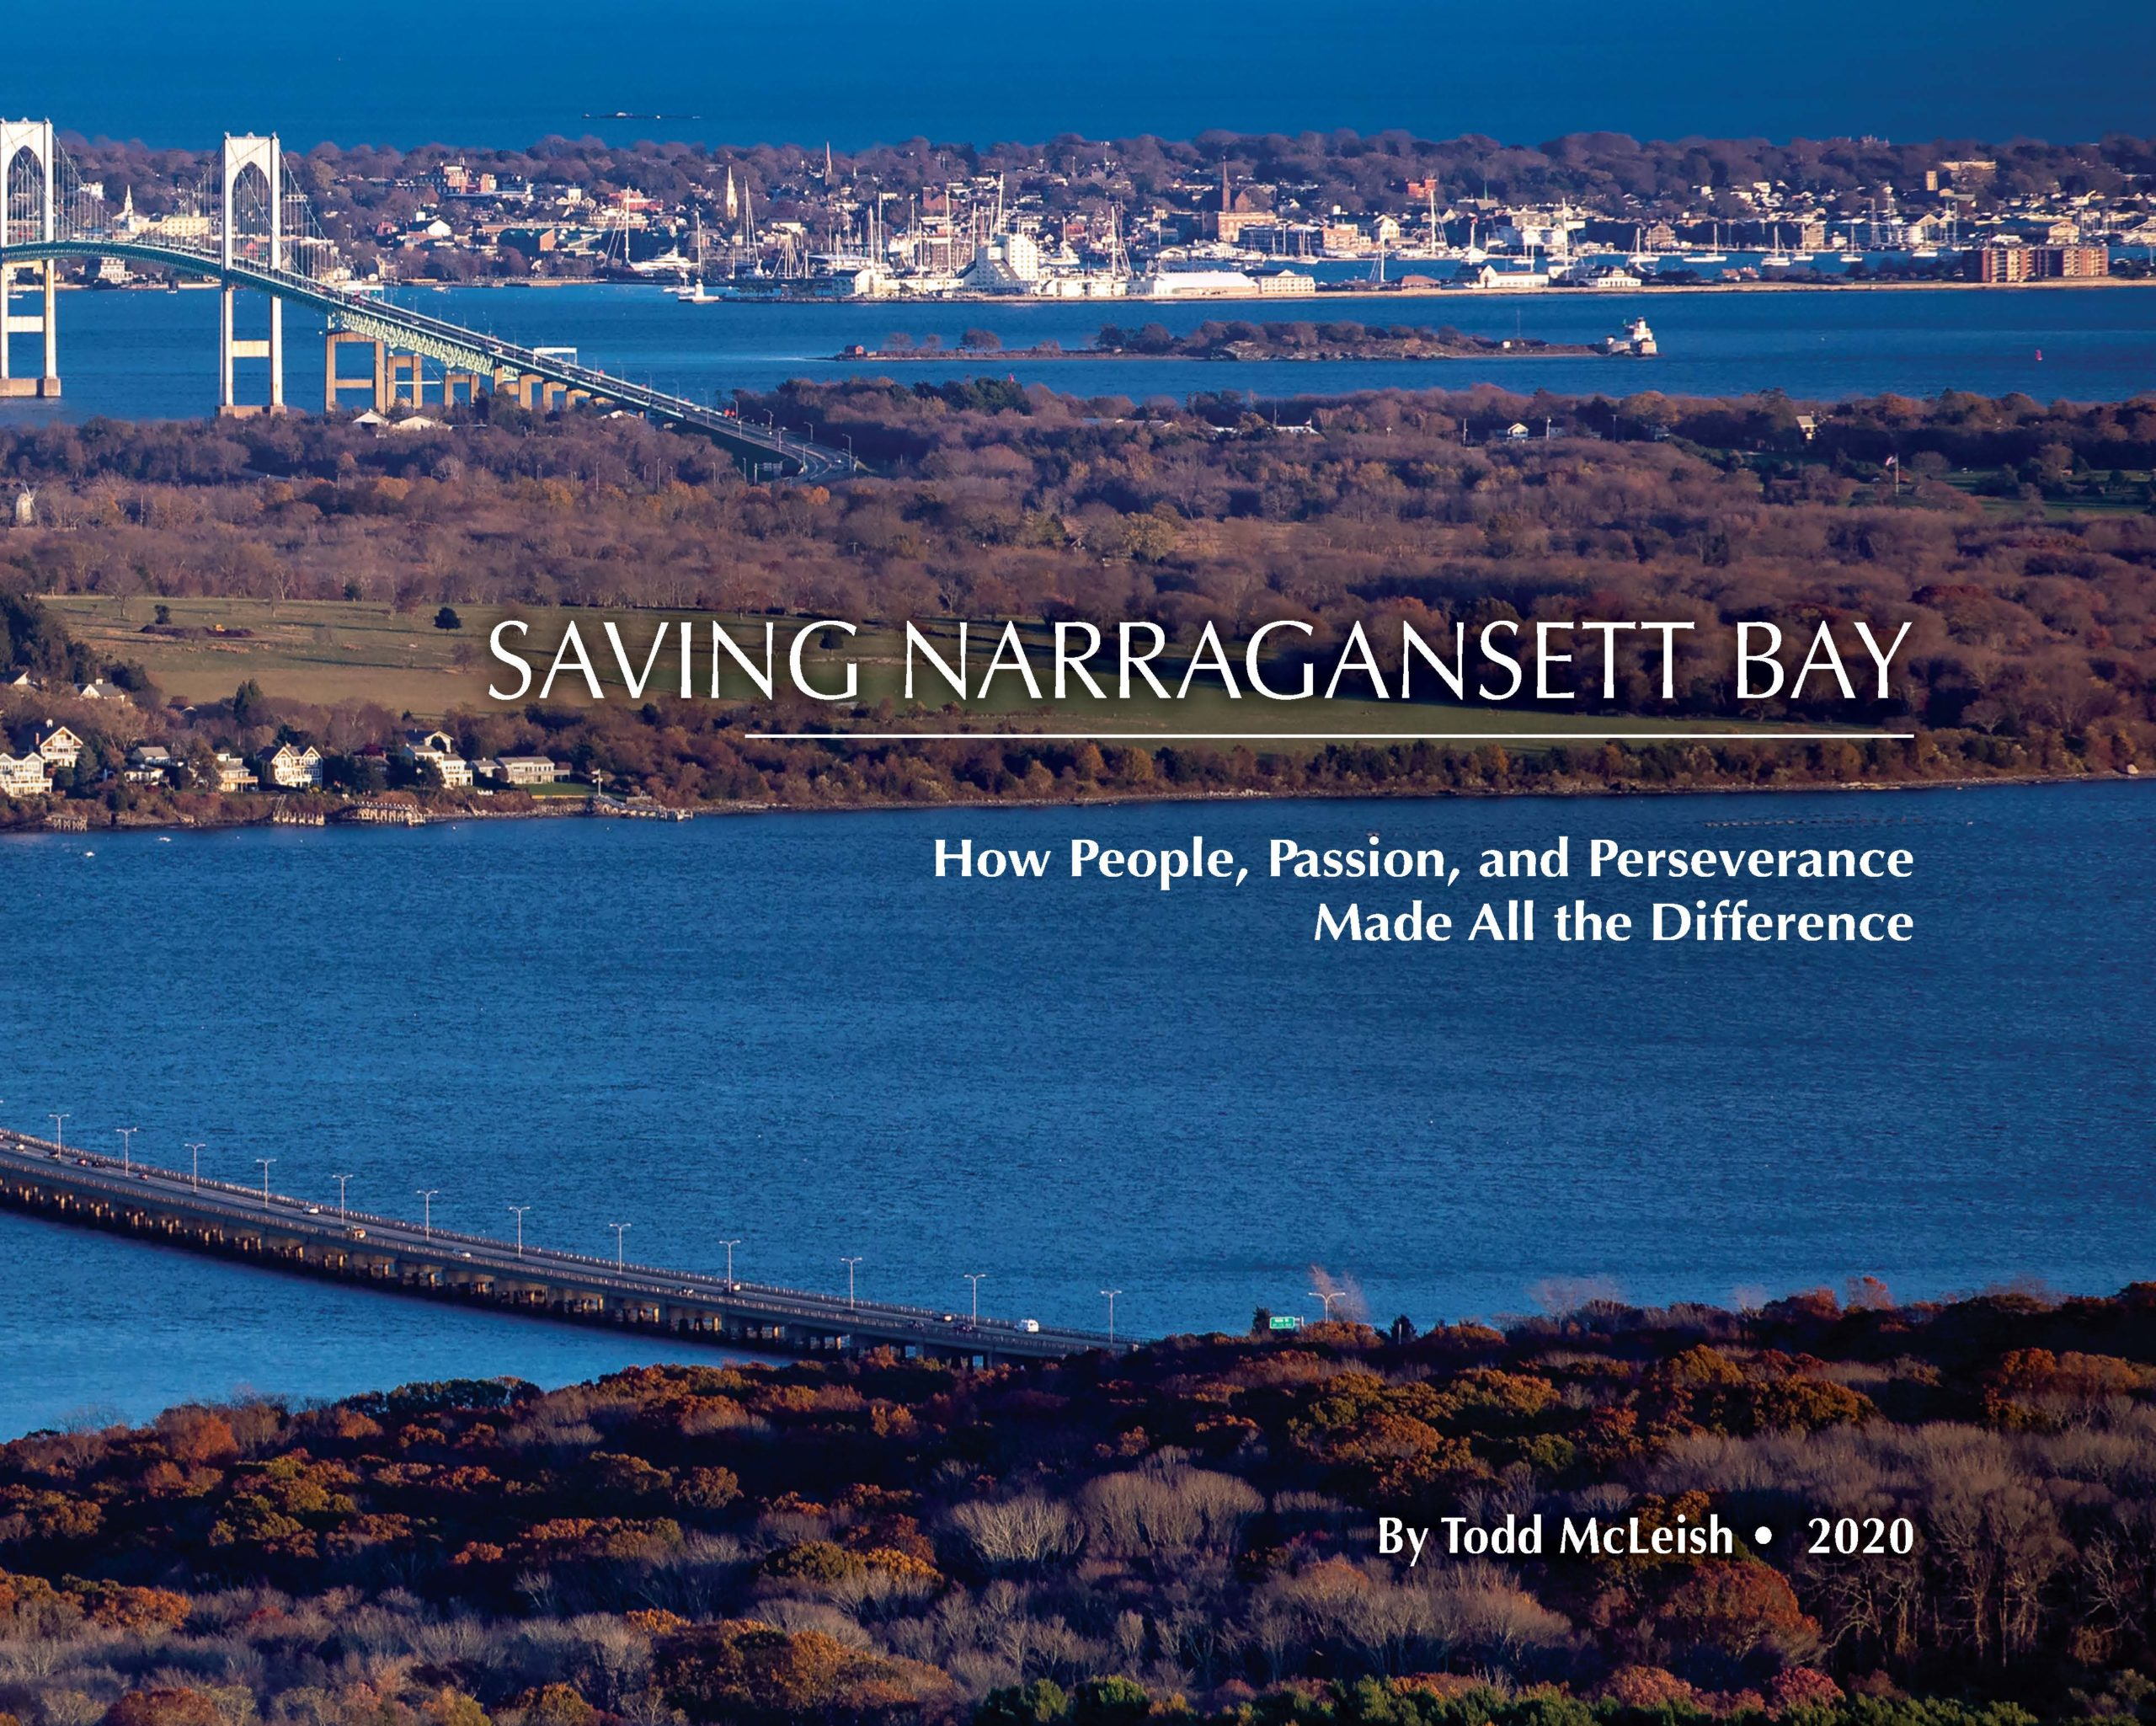 """Saving Narragansett Bay: How People, Passion, and Perseverance Made All the Difference,"" Save The Bay's recently-published history book, tells the history of the cleanup of Narragansett Bay. Discover the story of how the book came to be in this video interview with Save The Bay Executive Director, Jonathan Stone, and book author, Todd McLeish."